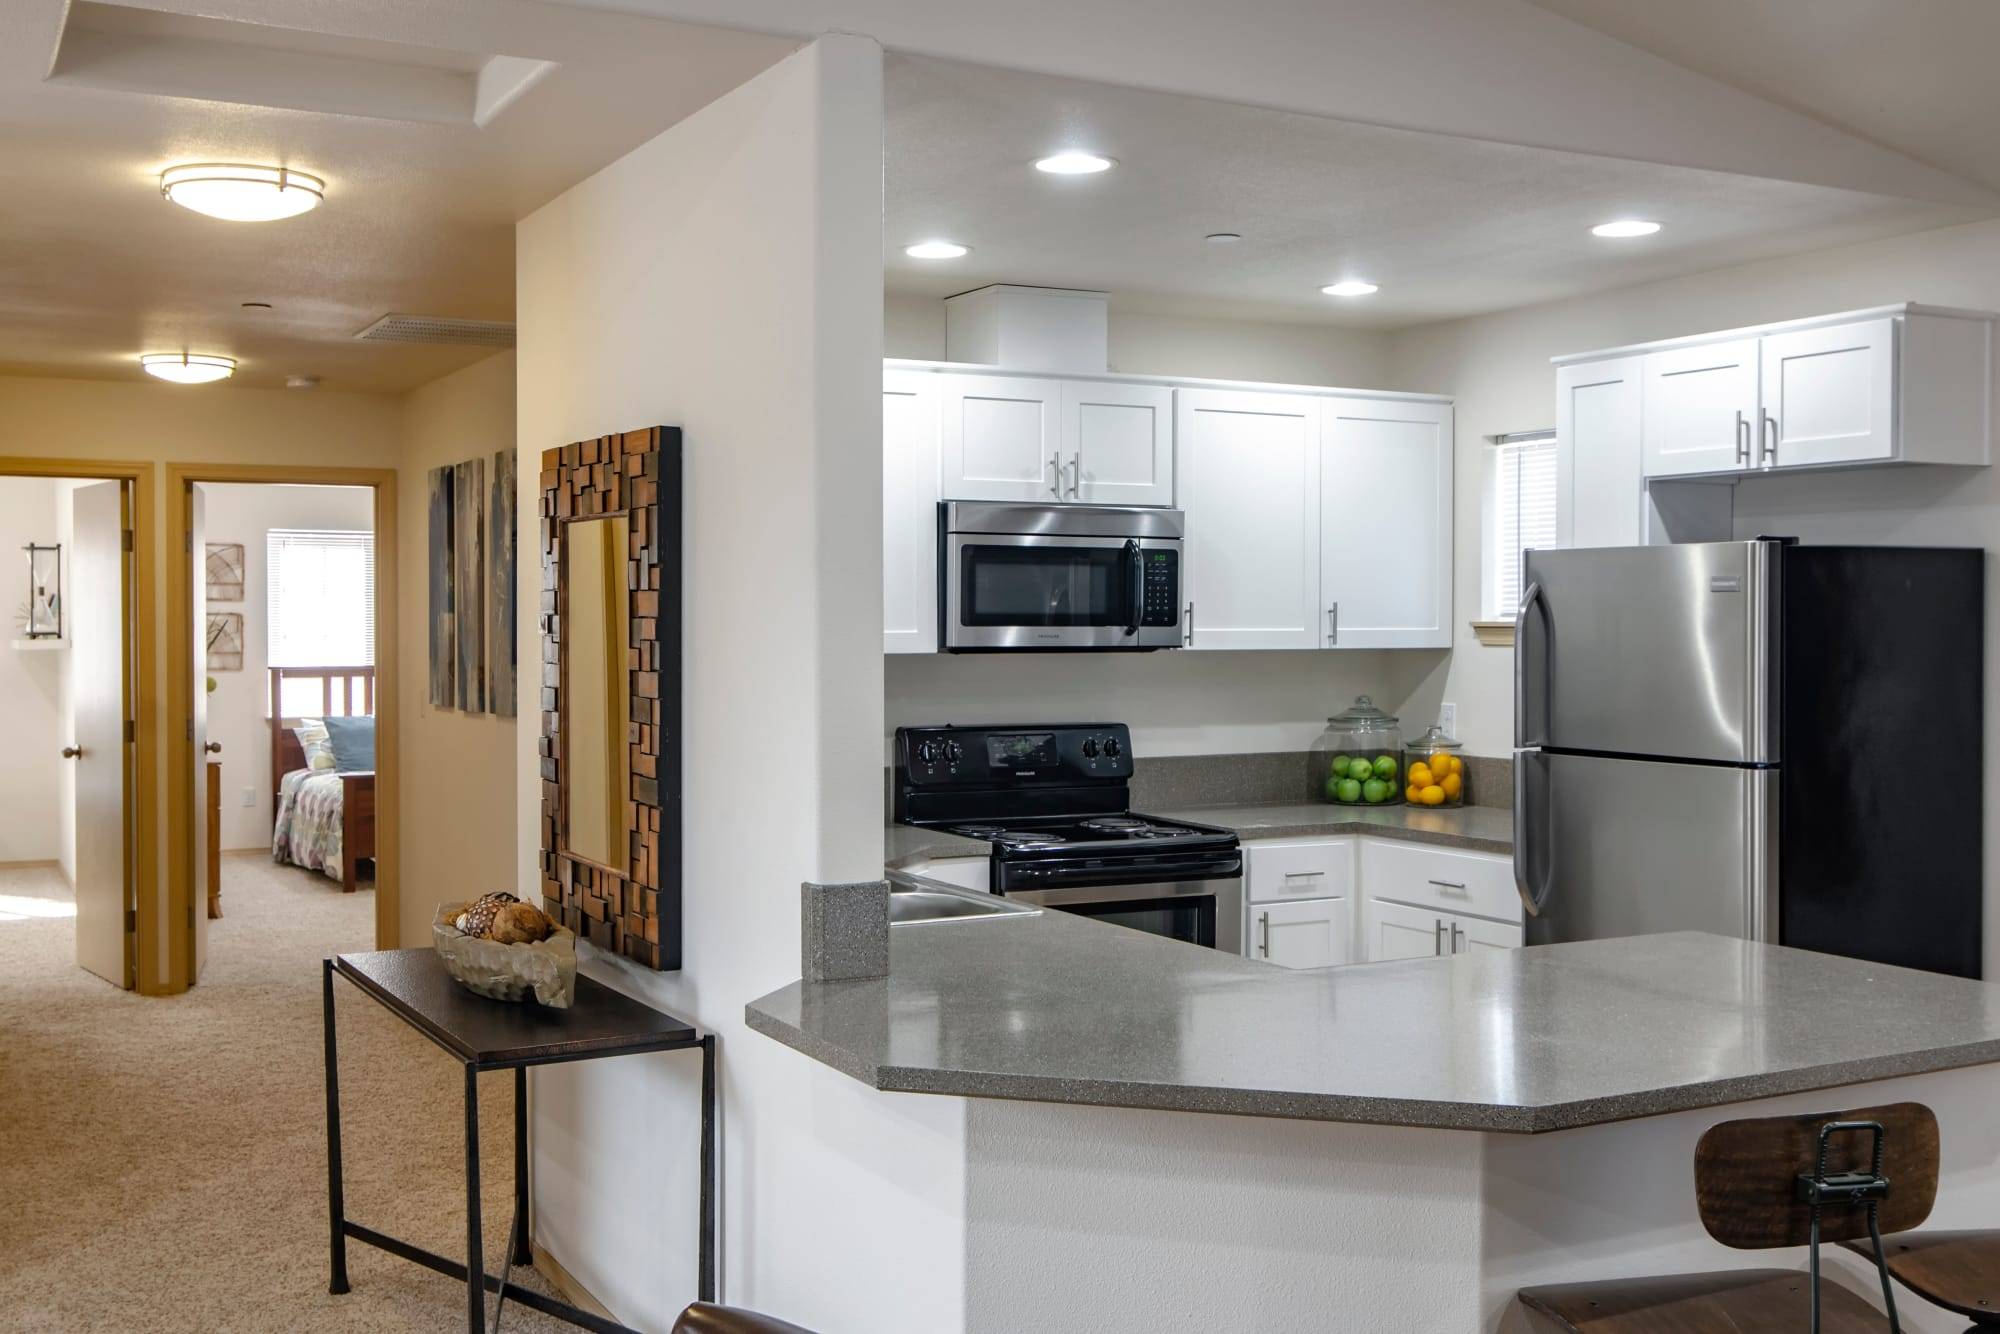 Renovated kitchen with white cabinets and a hallway view at The Addison Apartments in Vancouver, Washington